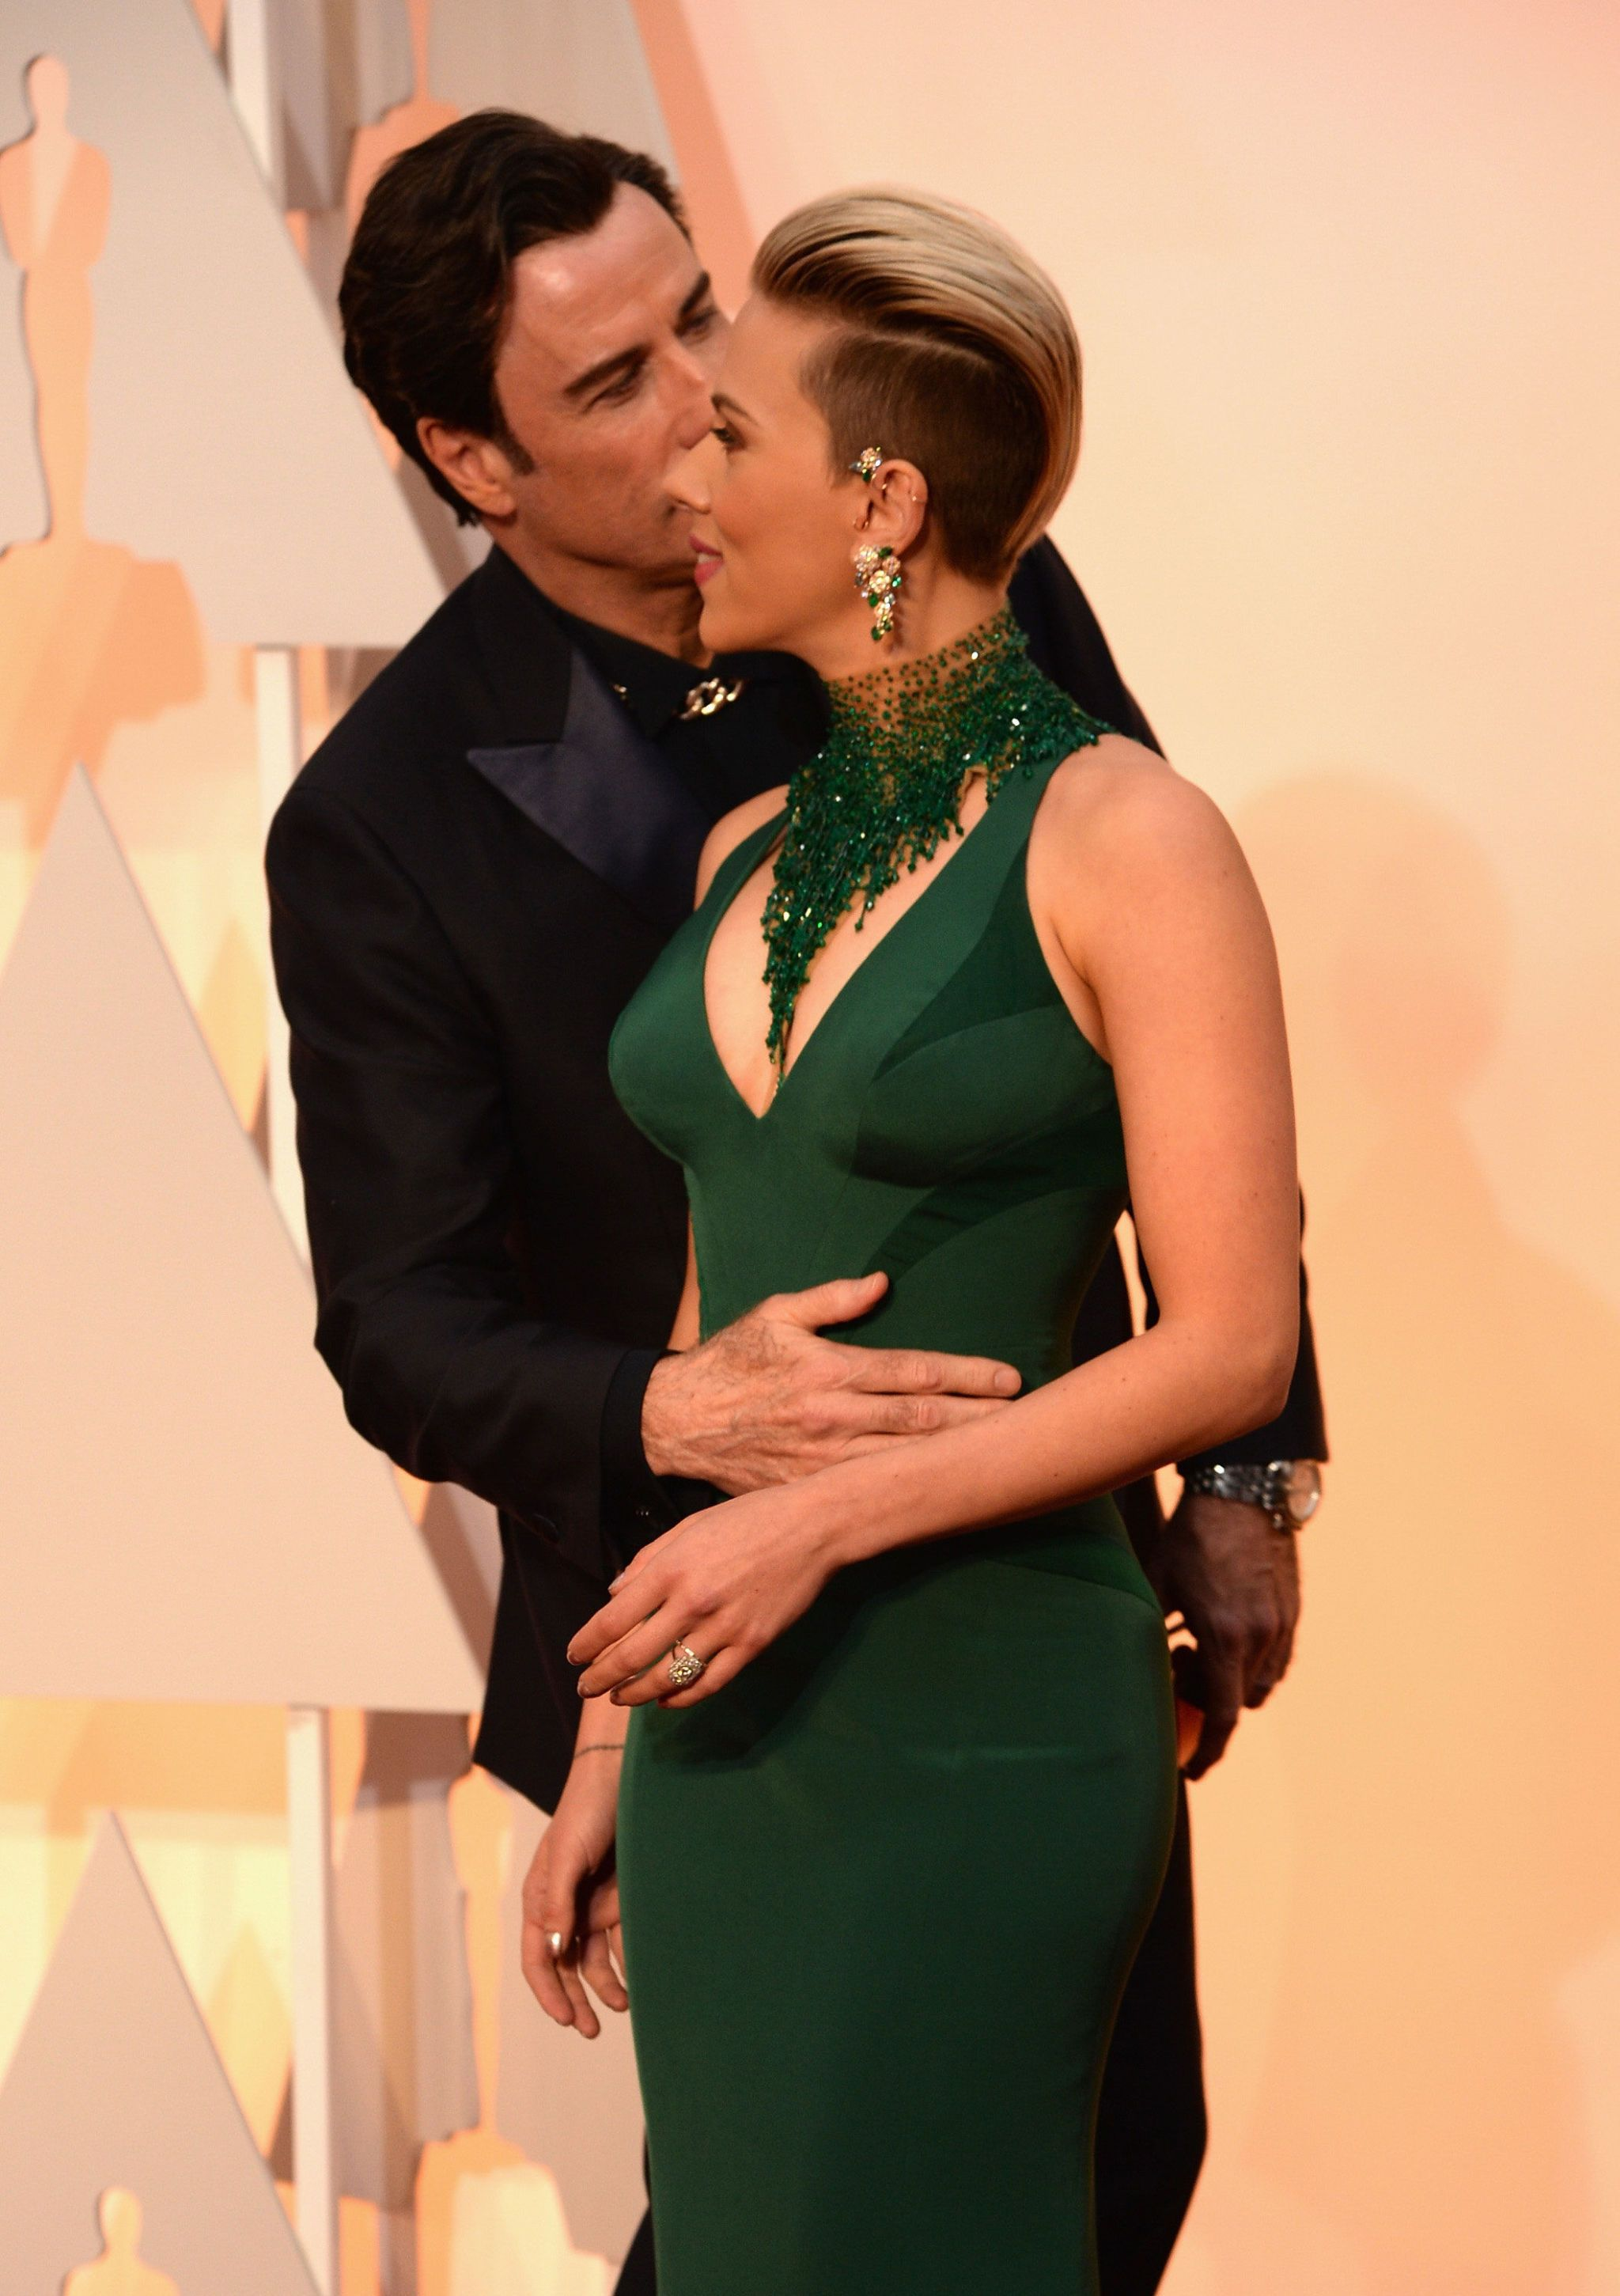 FINALLY Scarlett Johansson explains WTF John Travolta was doing